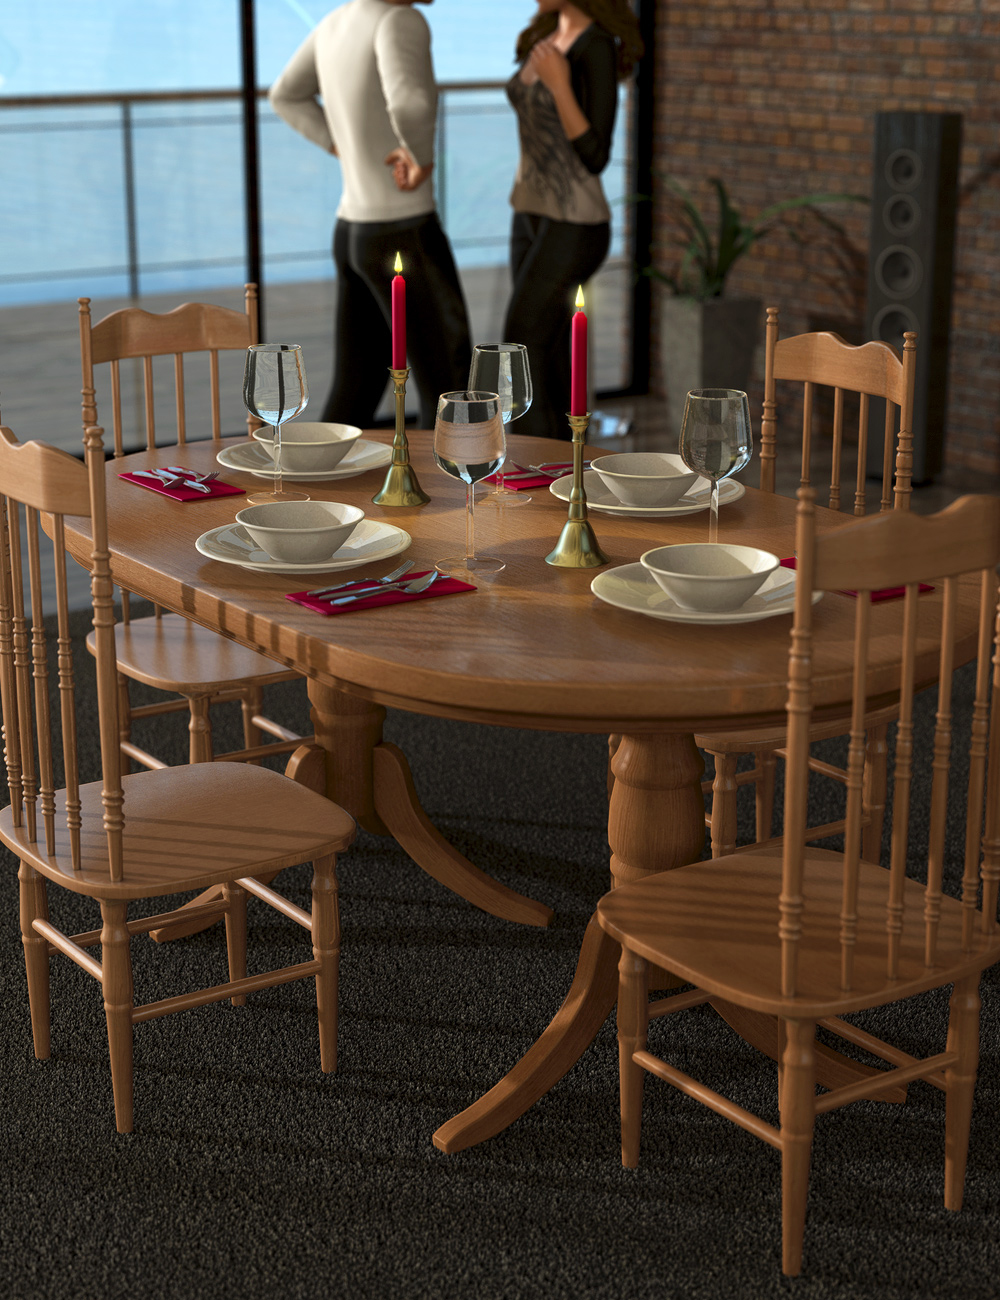 The Dining Collection by: ARTCollab, 3D Models by Daz 3D